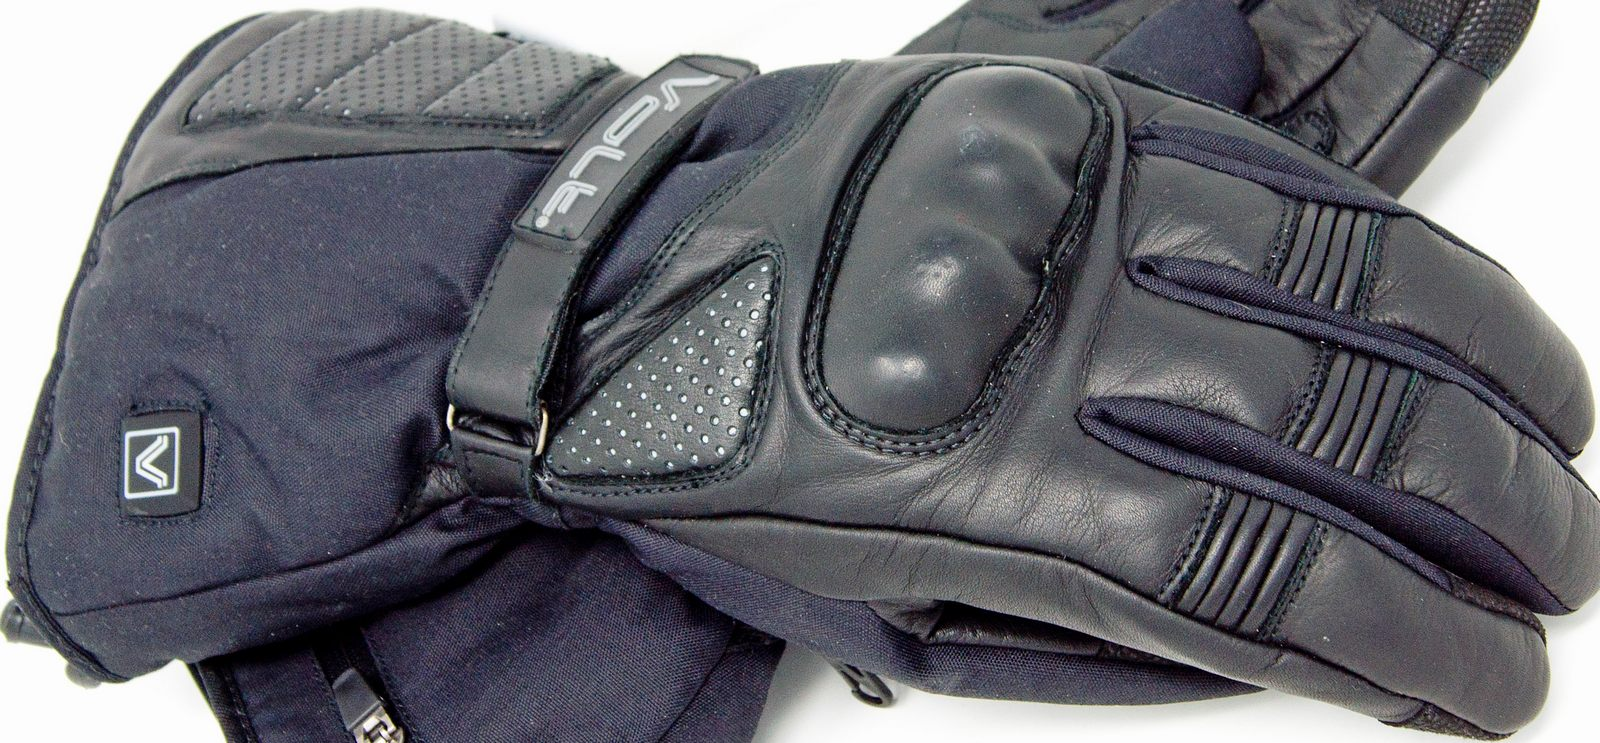 volt heat fusion heated gloves